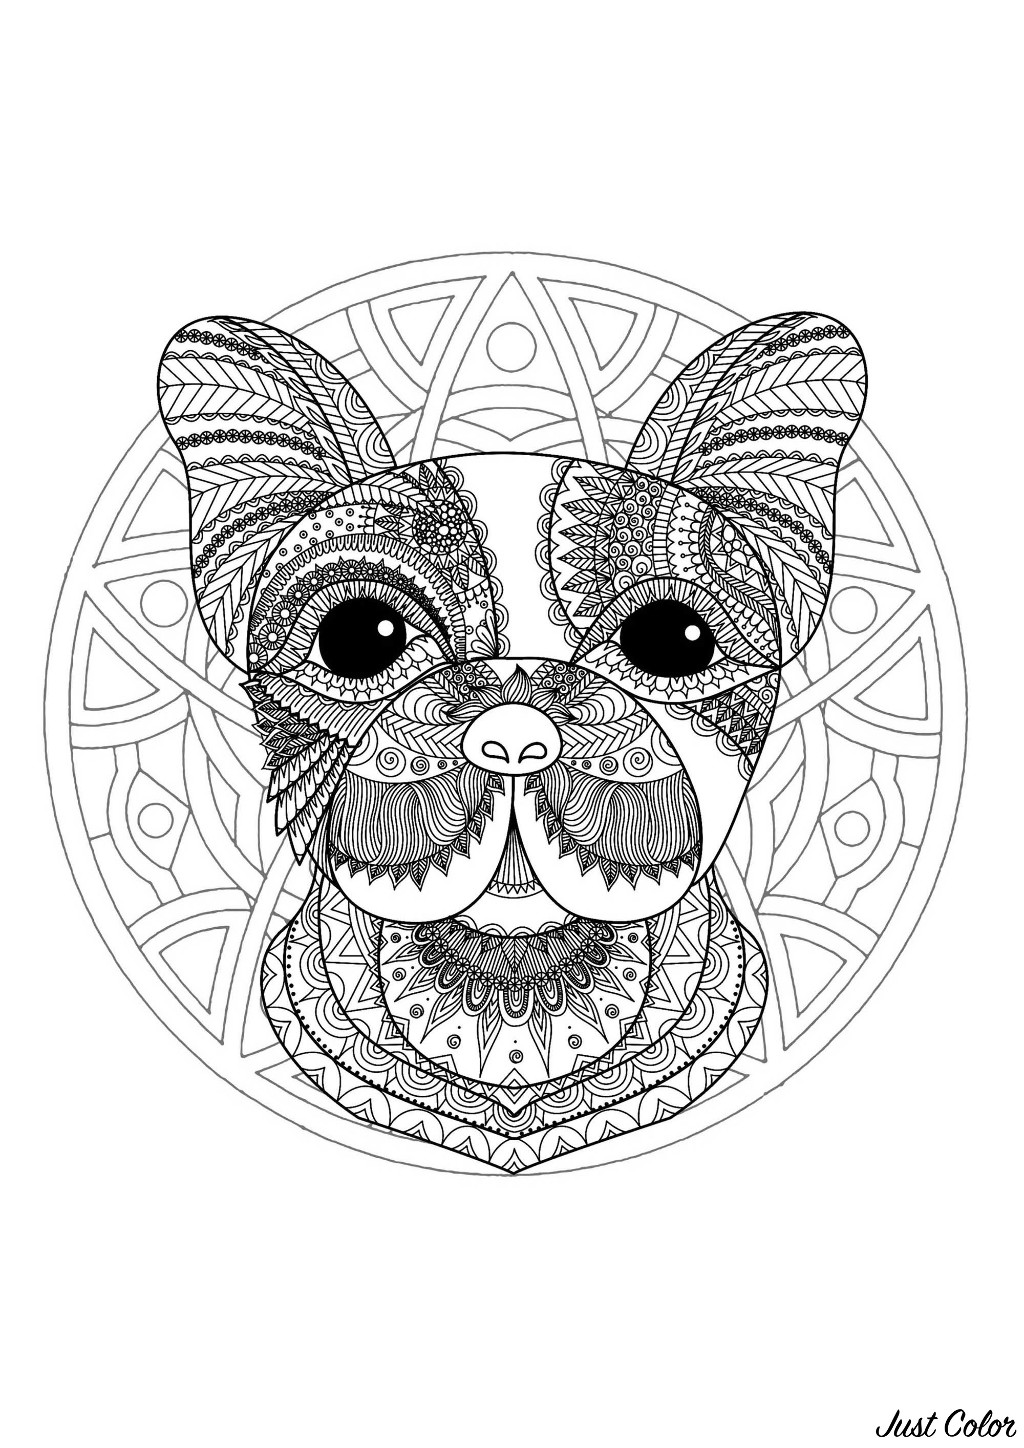 A Mandala featuring a cute dog, for those who prefer to color concrete and living elements. Do whatever it takes to get rid of any distractions that may interfere with your coloring.